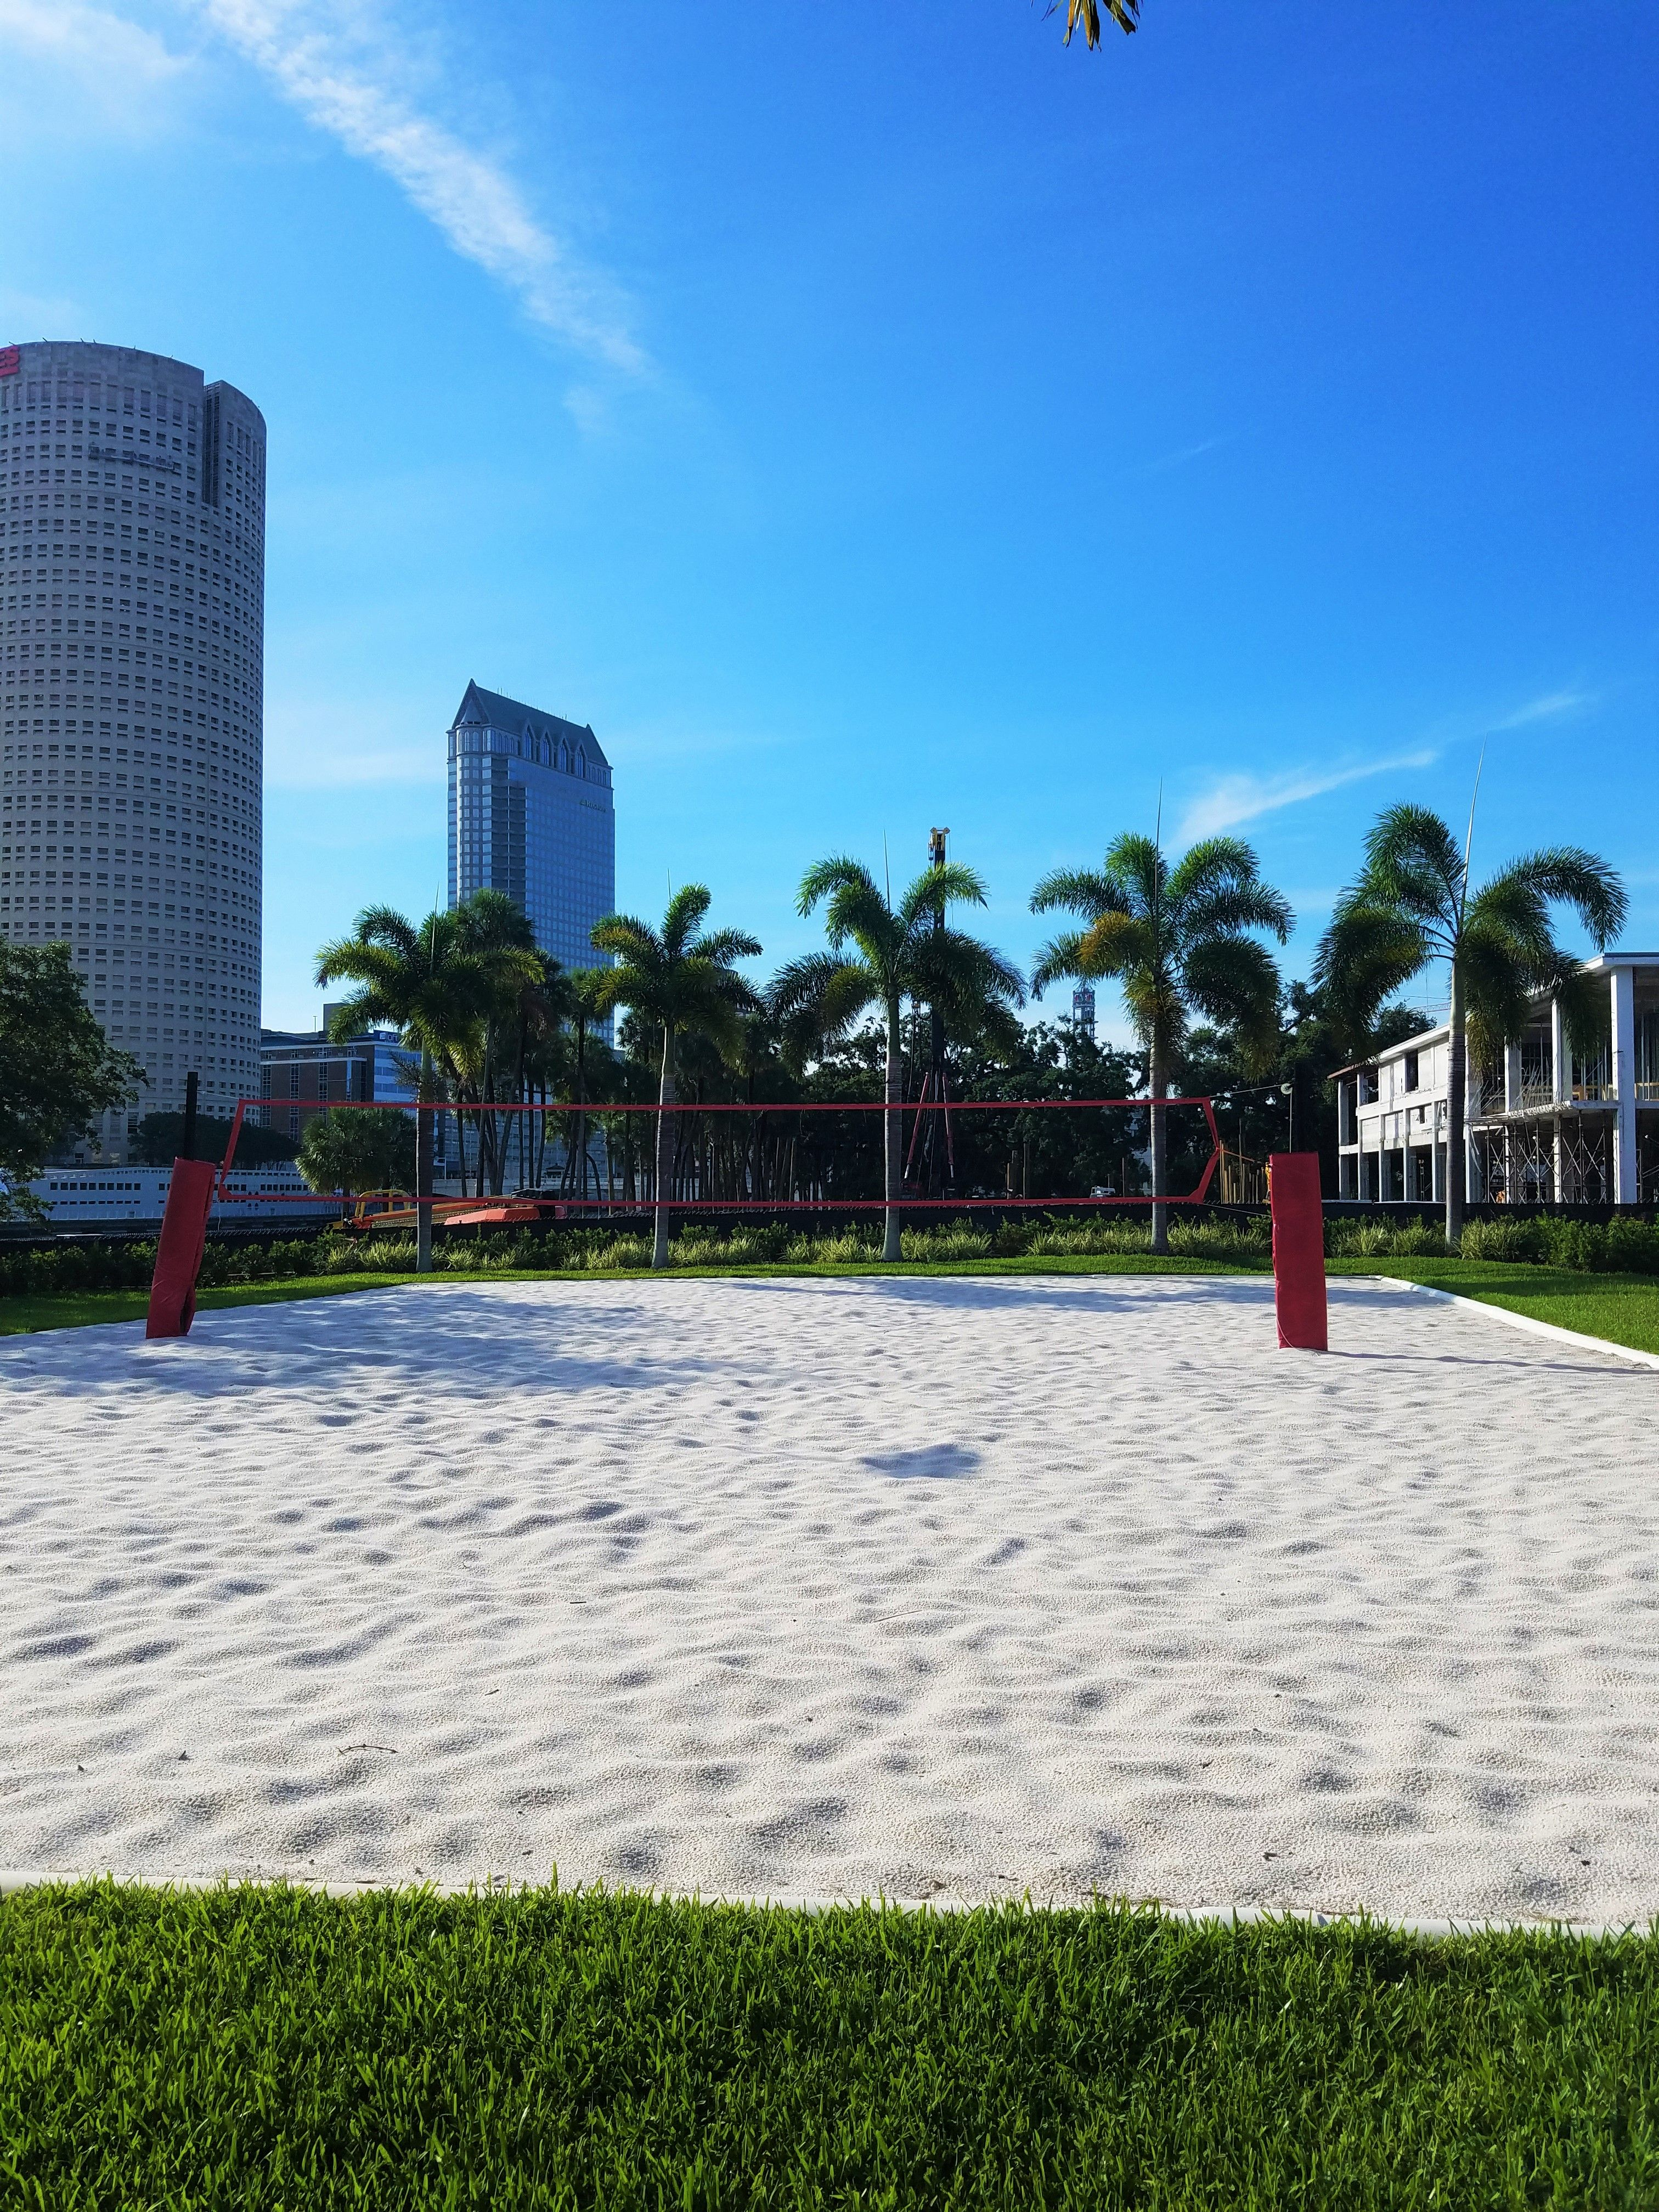 Beach Volleyball With A City View Anyone Universityoftampa University Of Tampa Colleges In Florida Tampa Florida